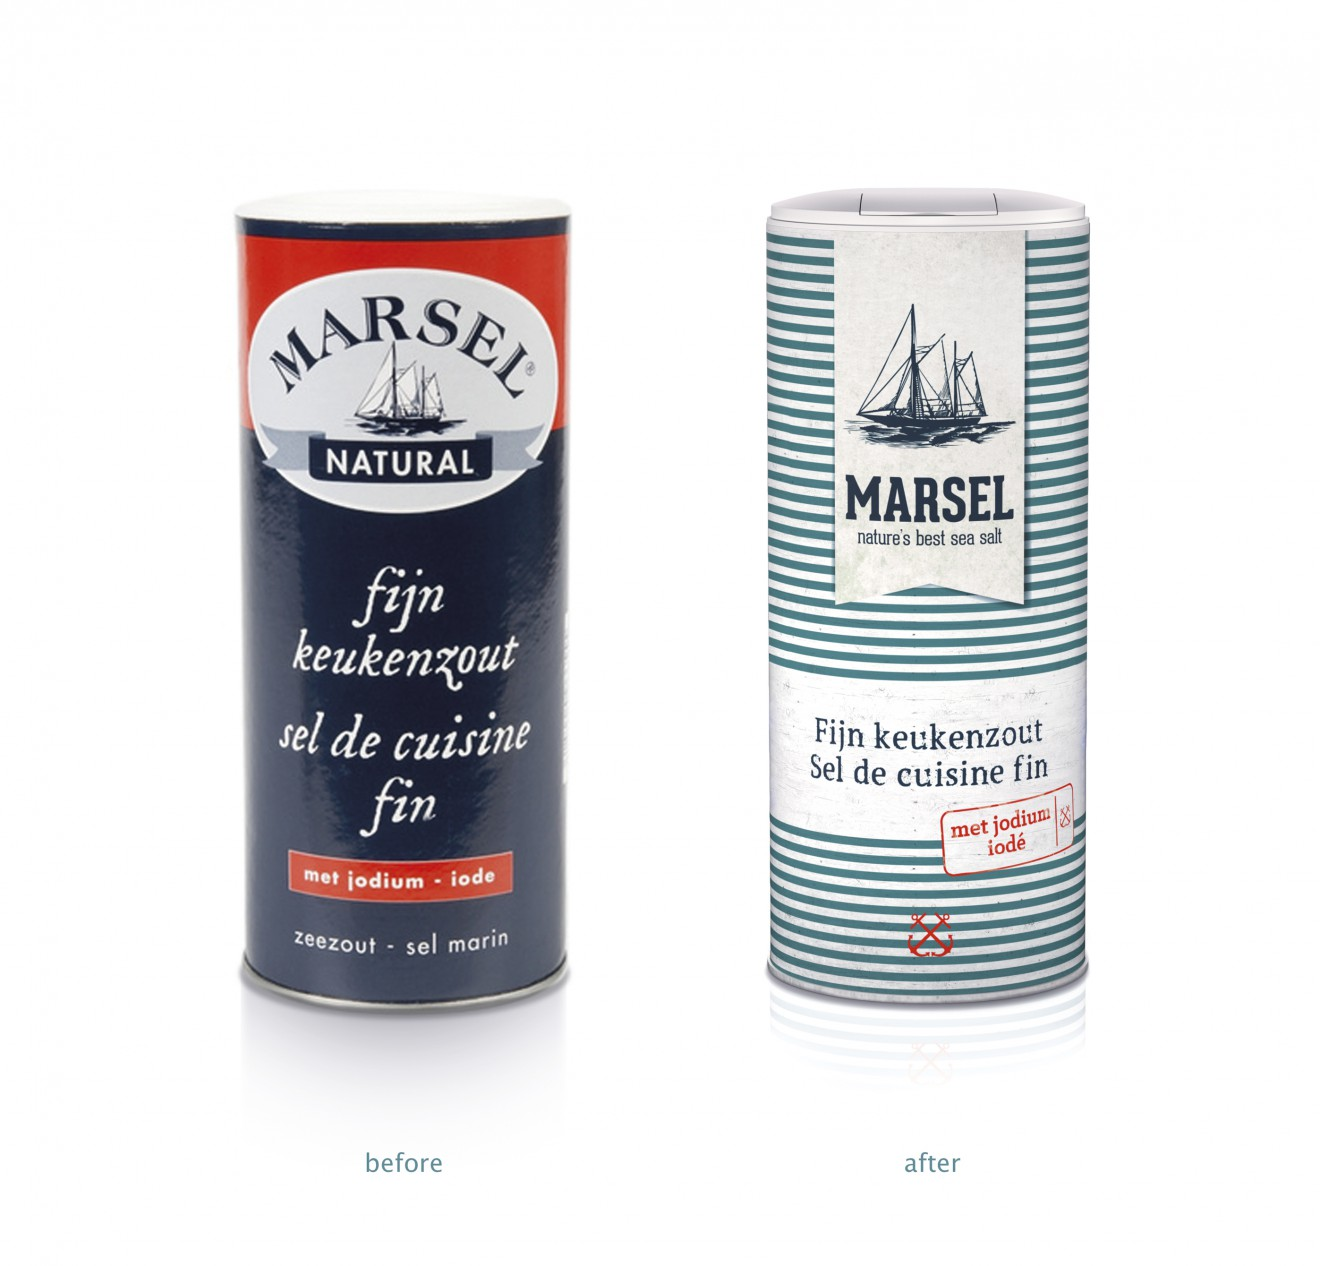 Quatre Mains package design - logo, update, marsel, best salt